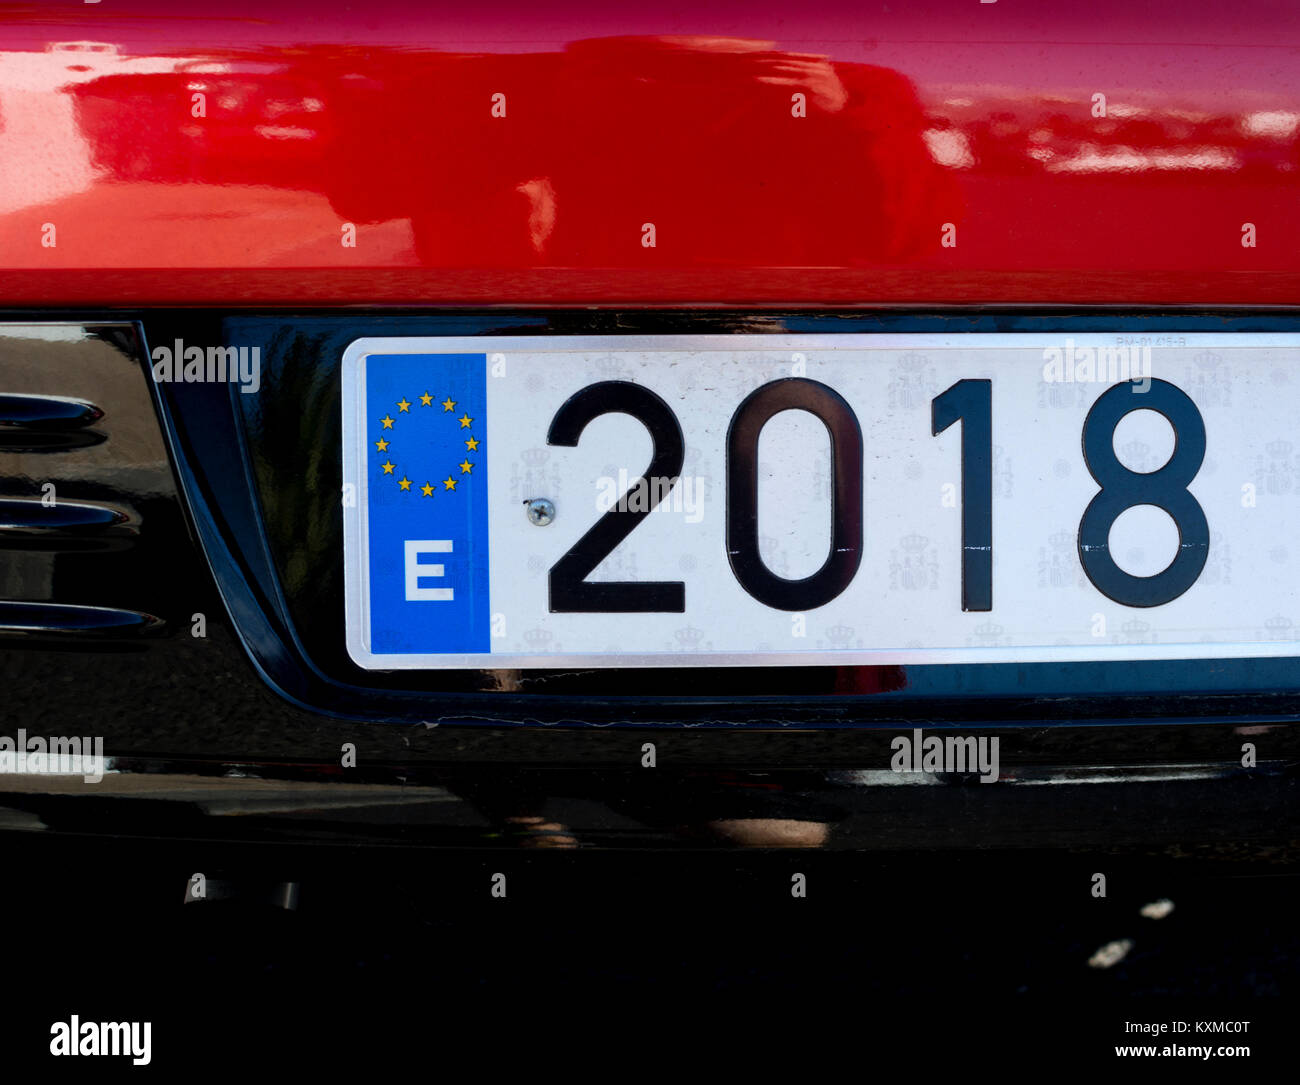 Spanish car registration plate with 2018 and EU symbol - Stock Image